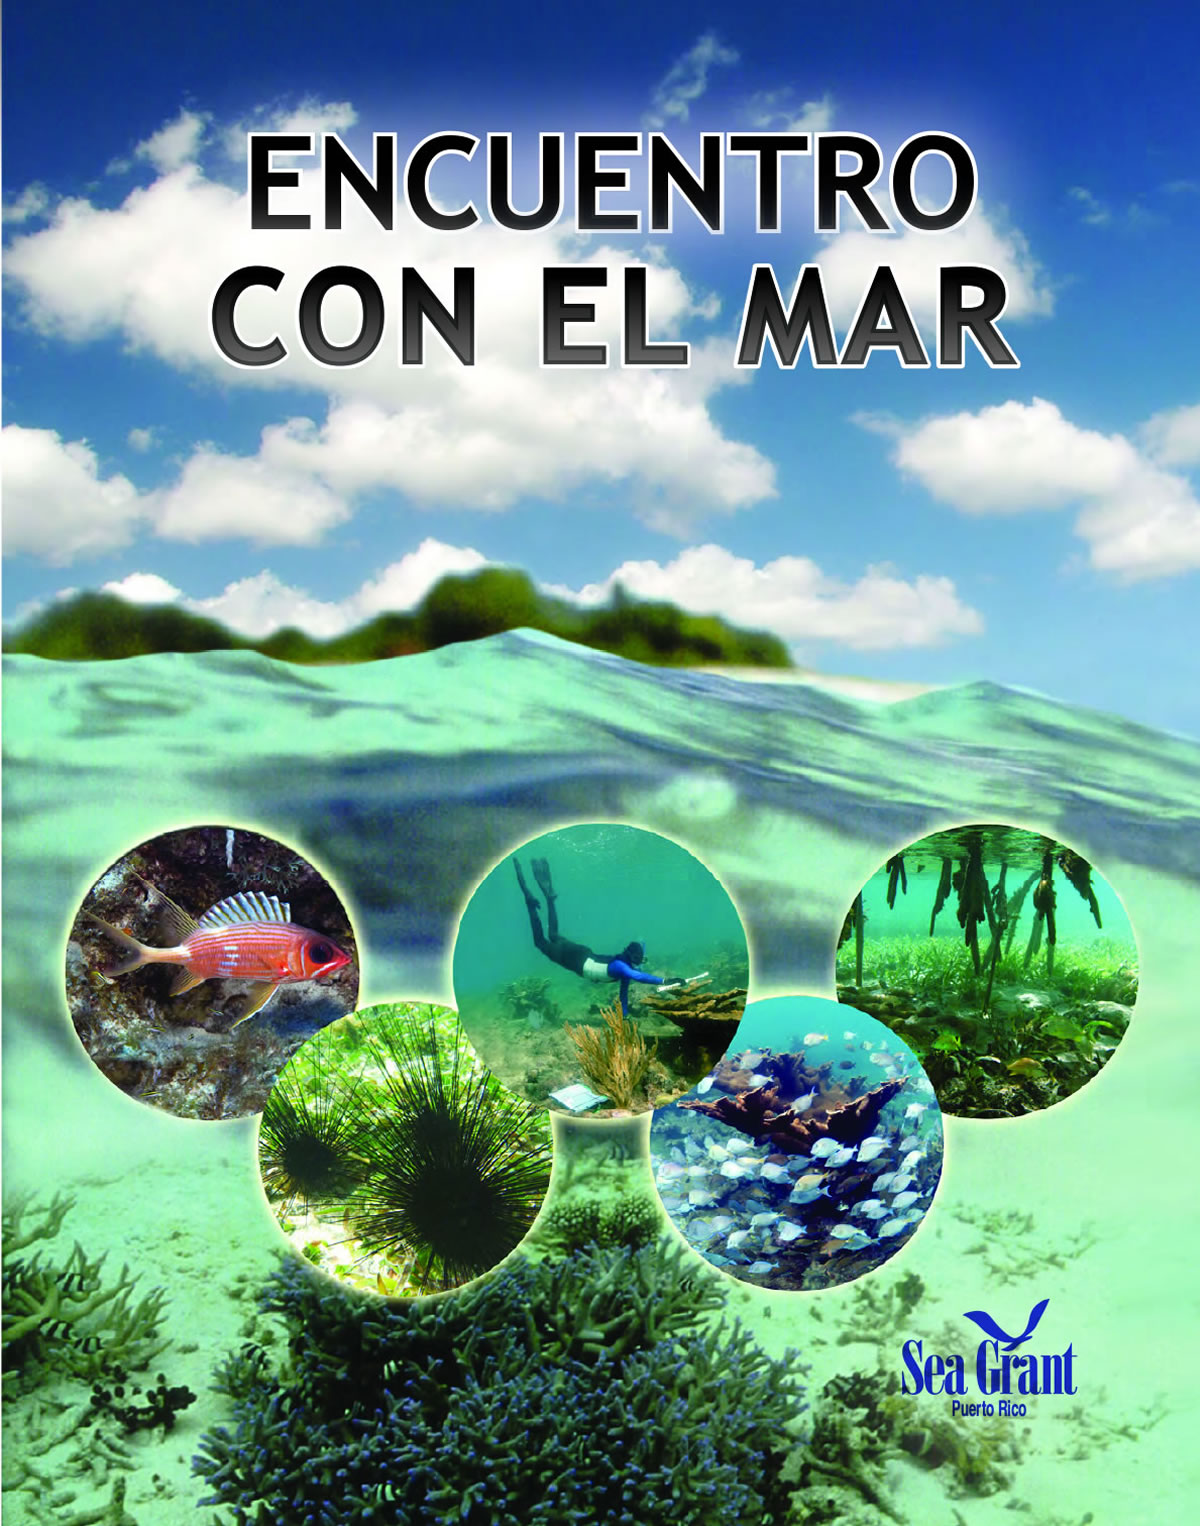 Encuentro con el mar (second edition)